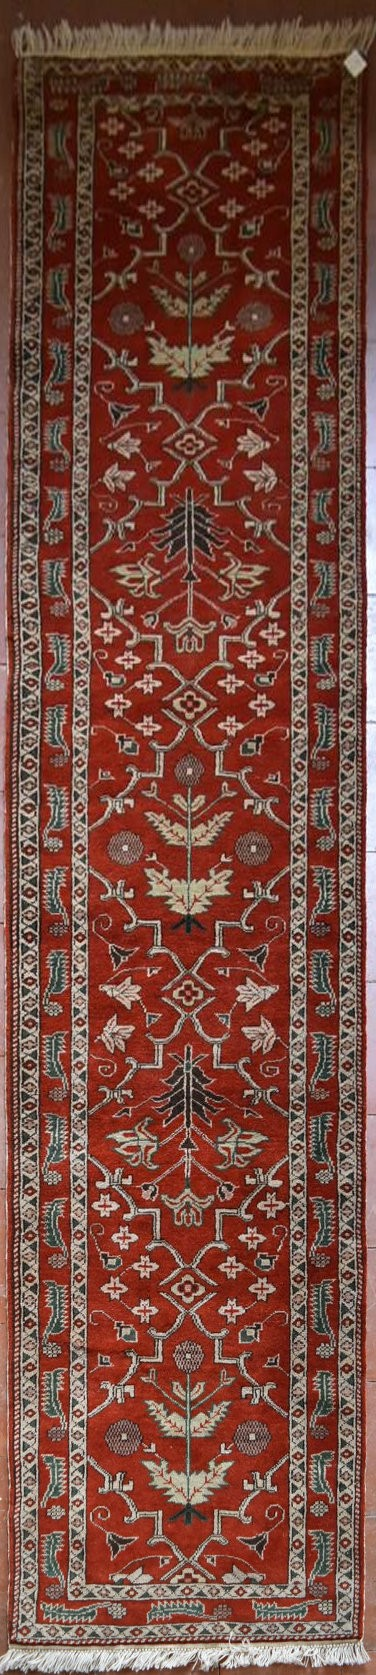 A Moughal style runner with repeating scrolling trellis central design within a border of serrated